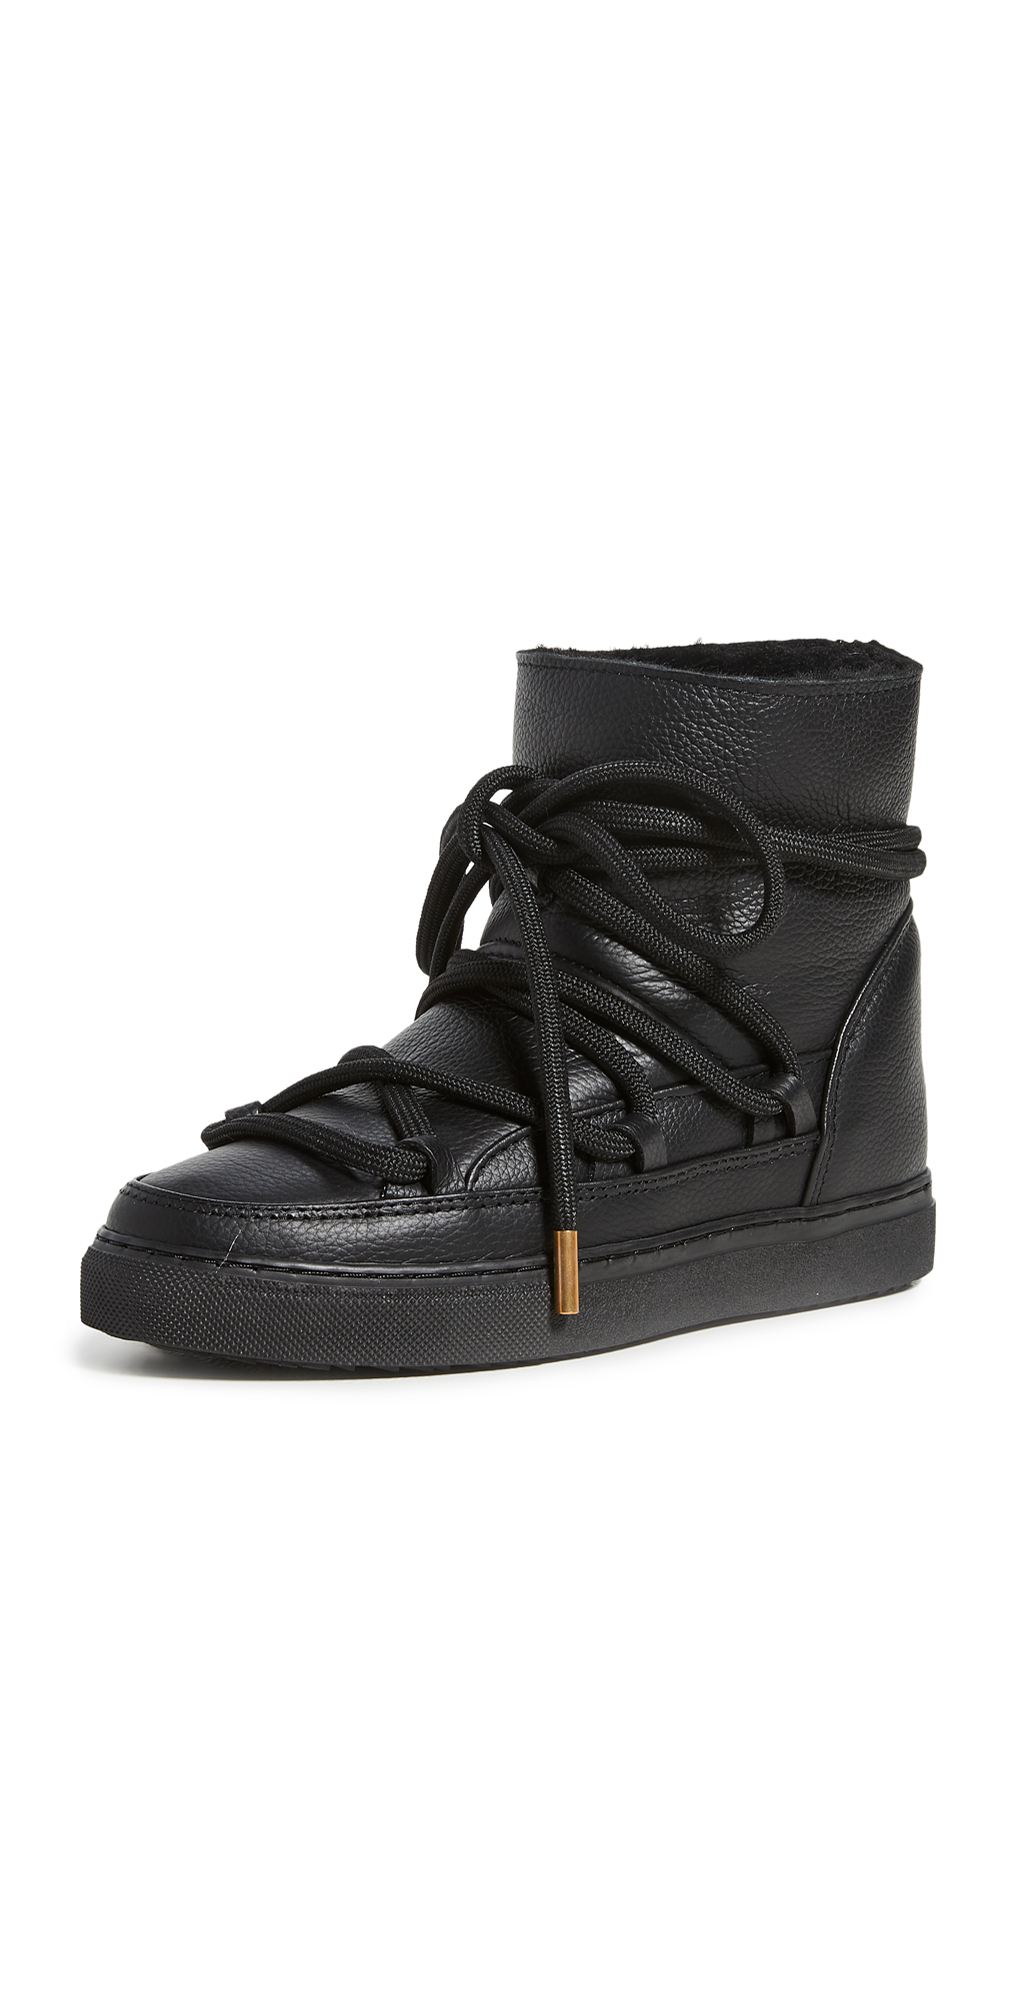 Full Leather Shearling Sneakers